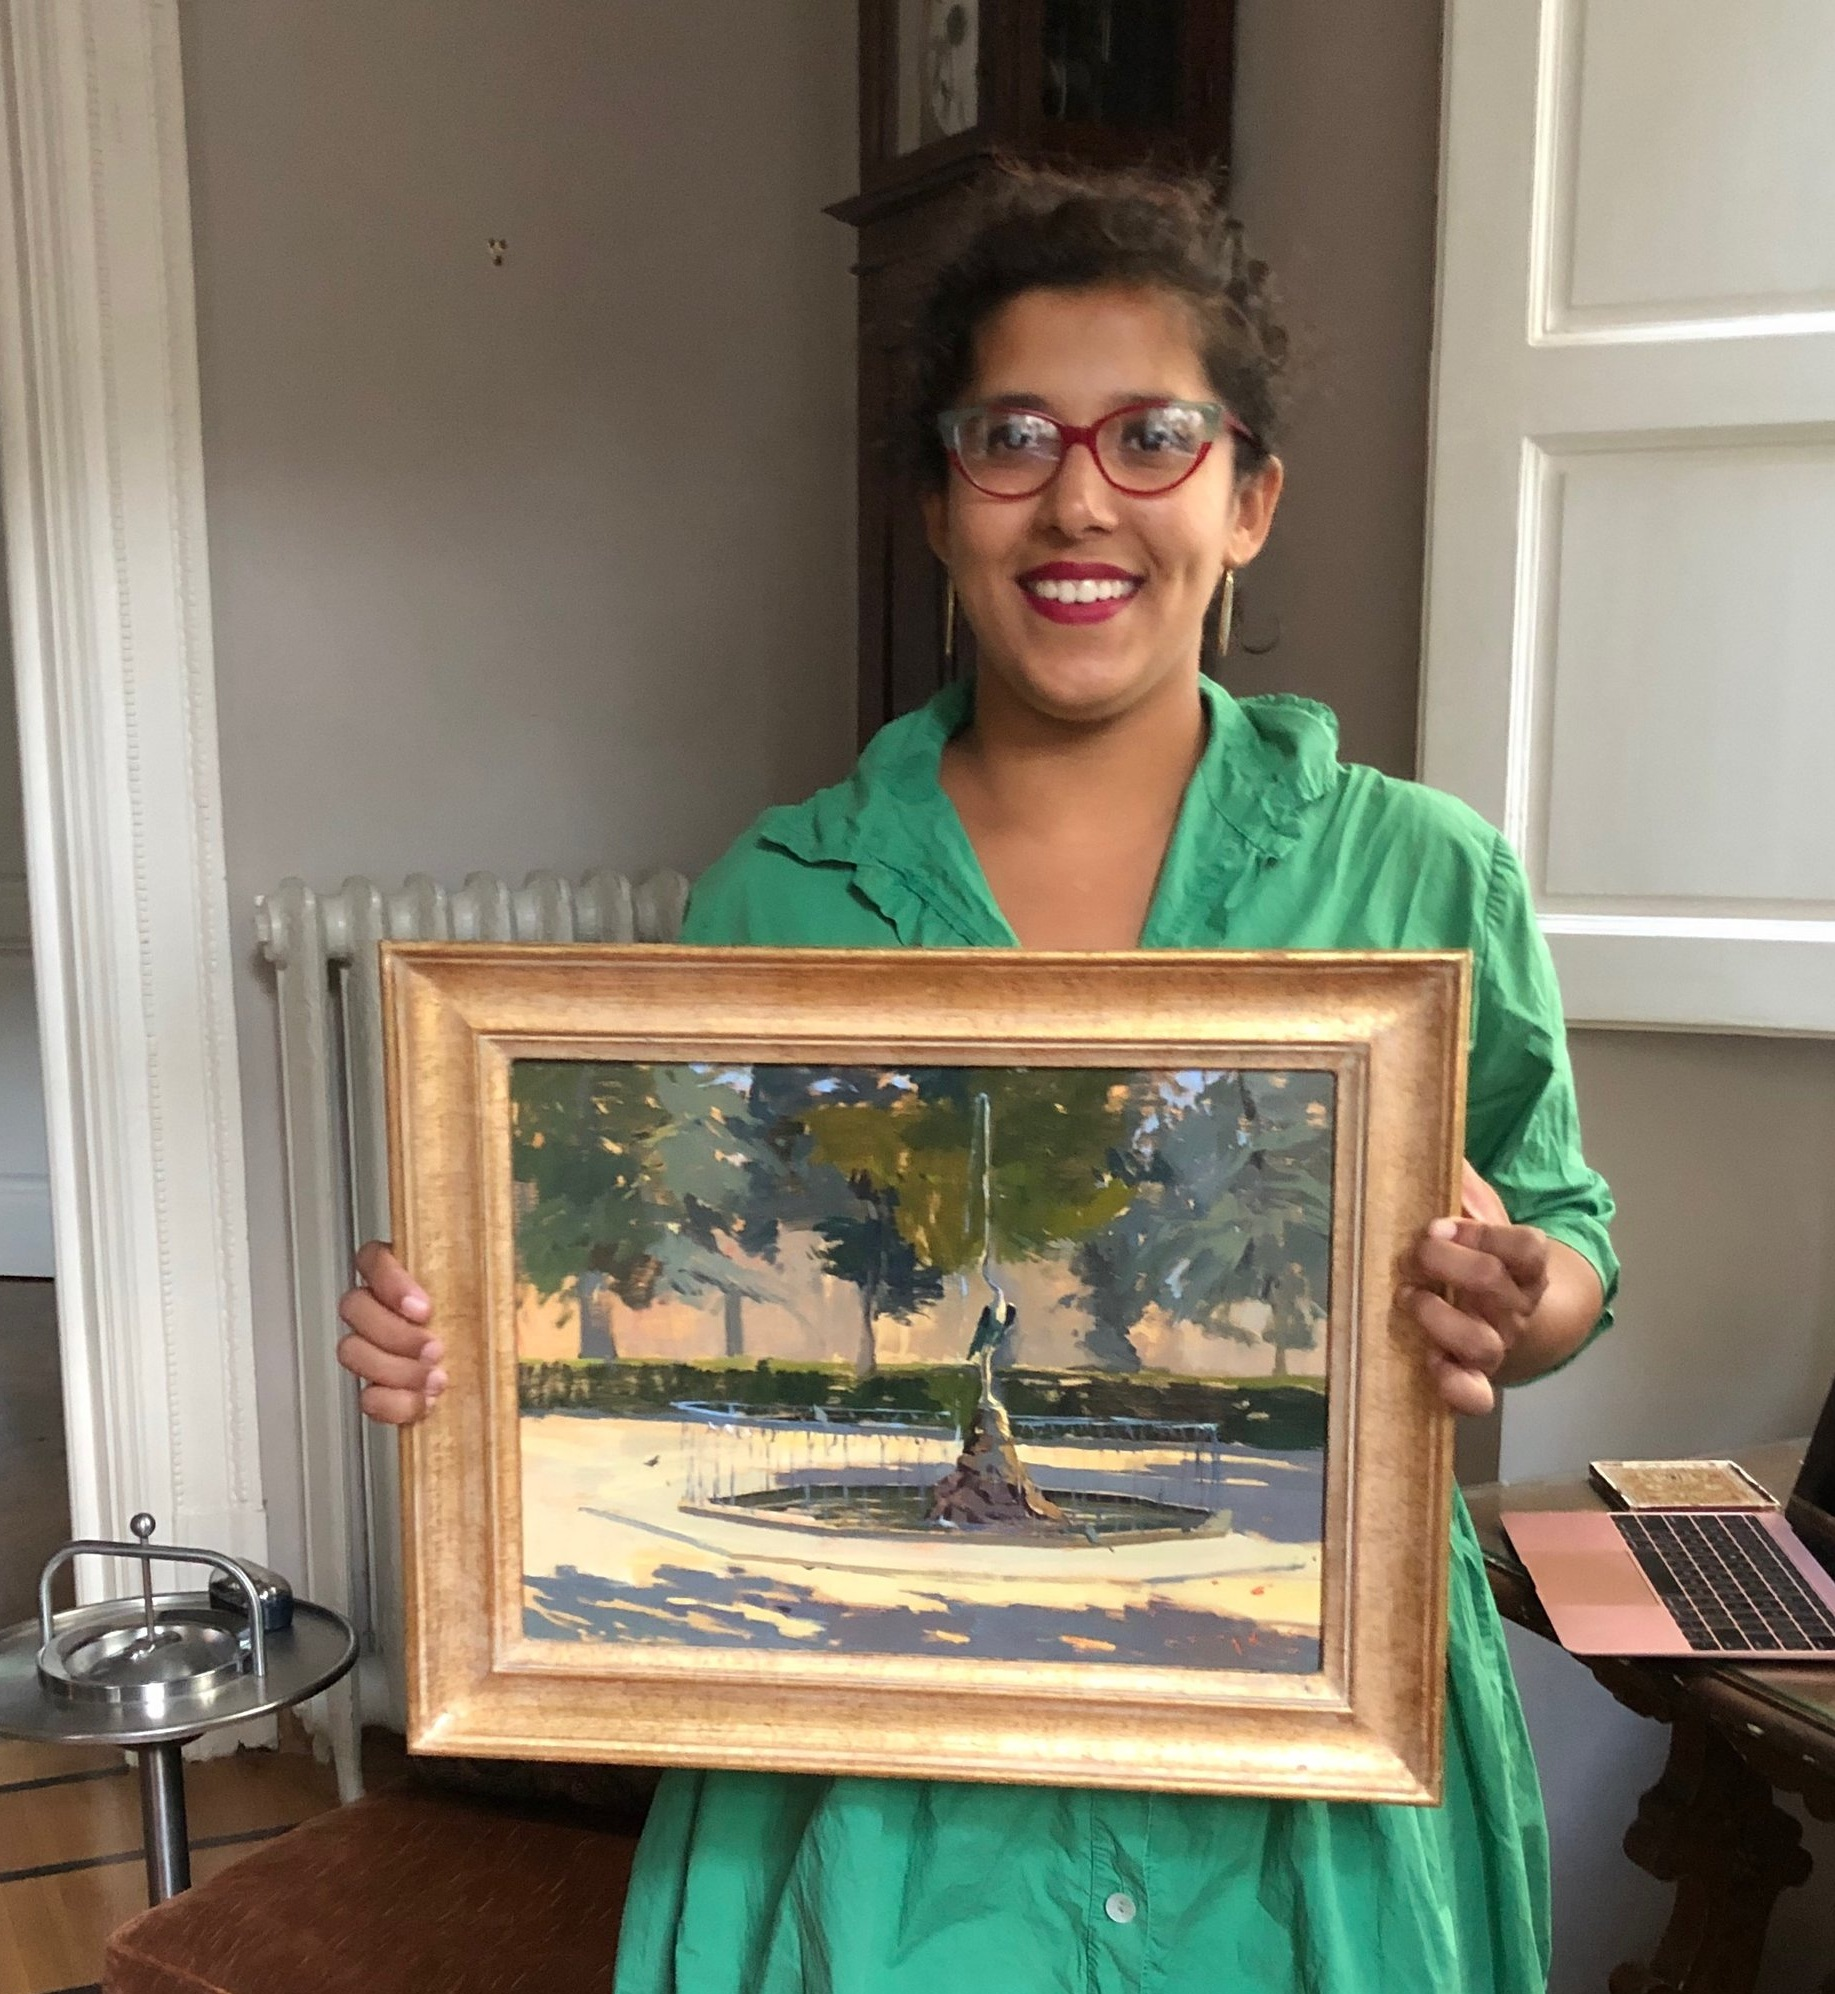 Tanvi Pathare with her framed painting of the fountain in our park